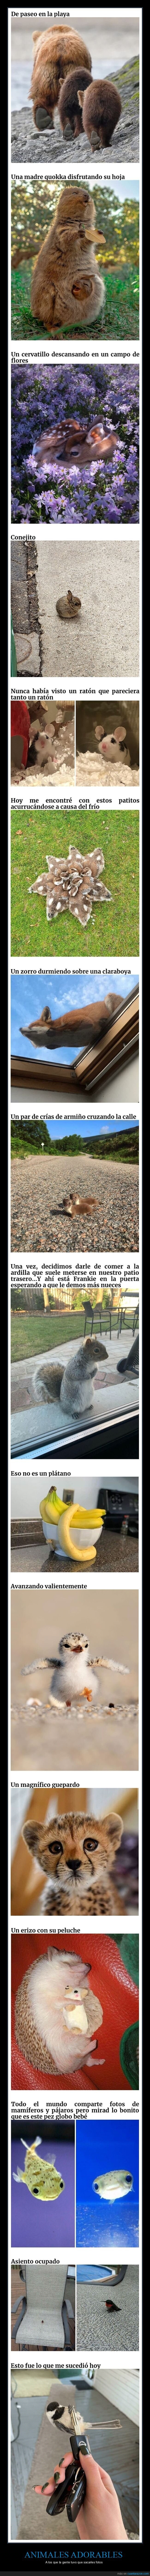 adorables,animales